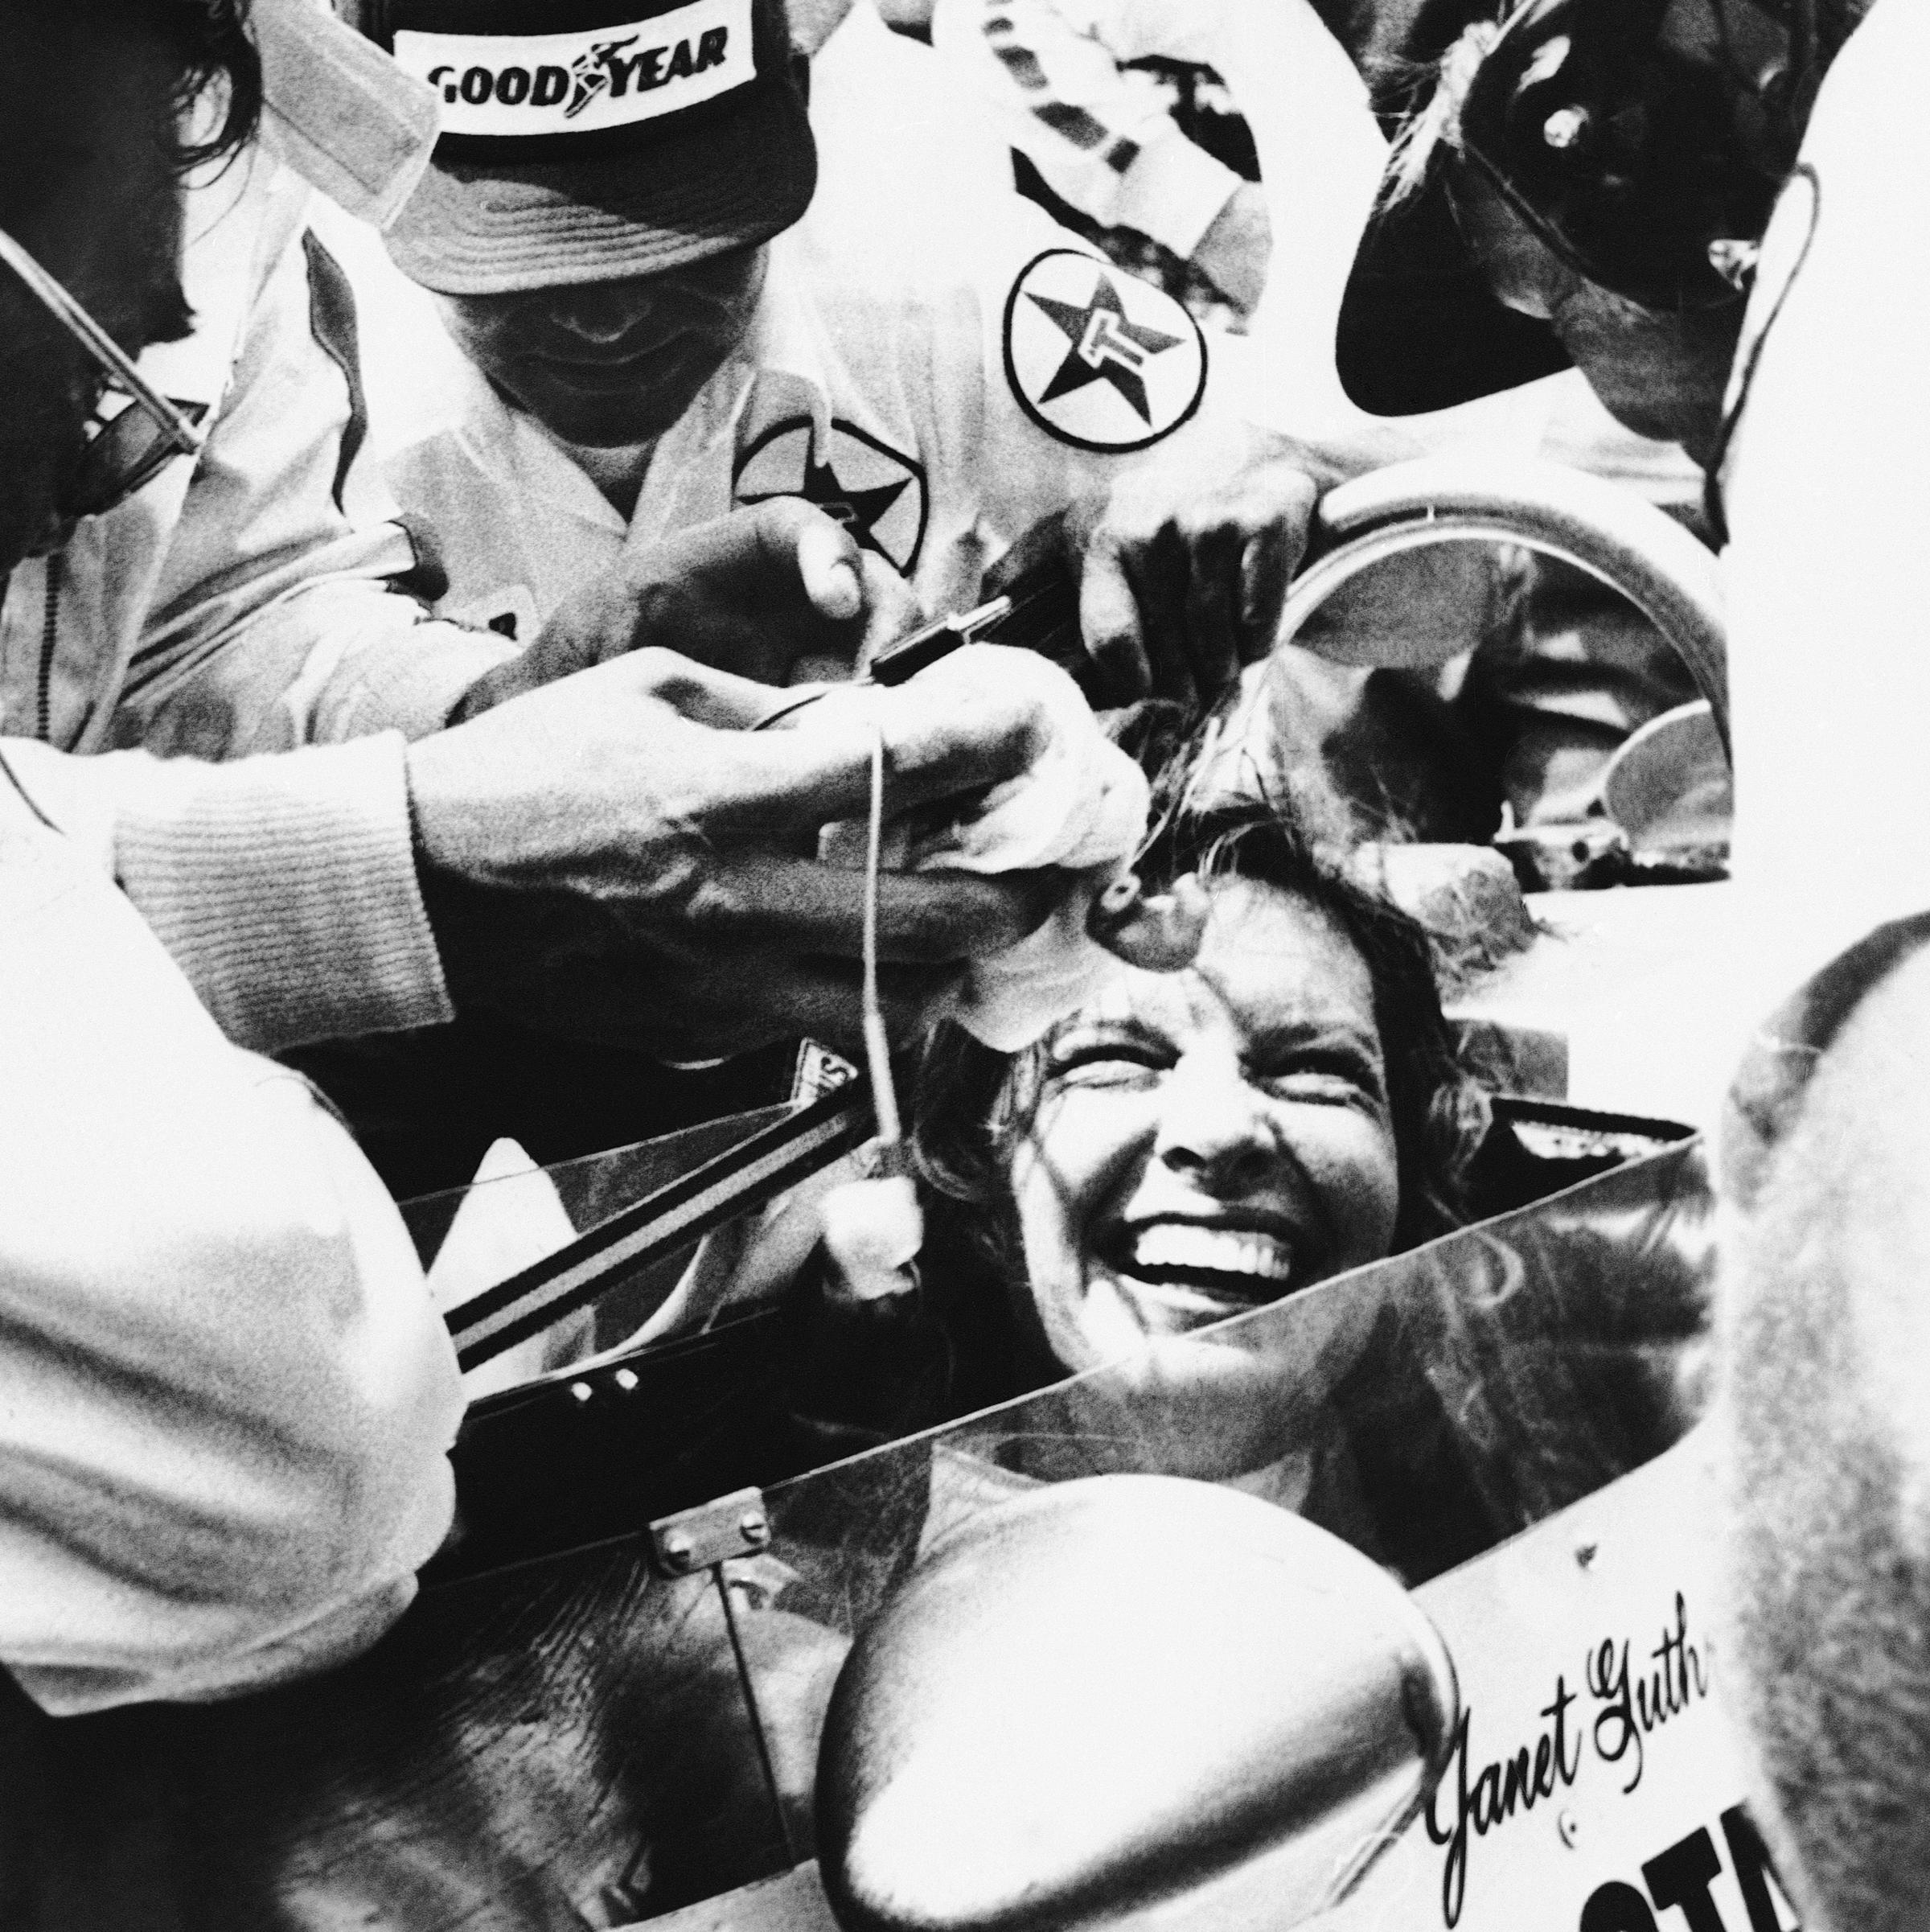 pics Janet Guthrie 11th at Indianapolis 500